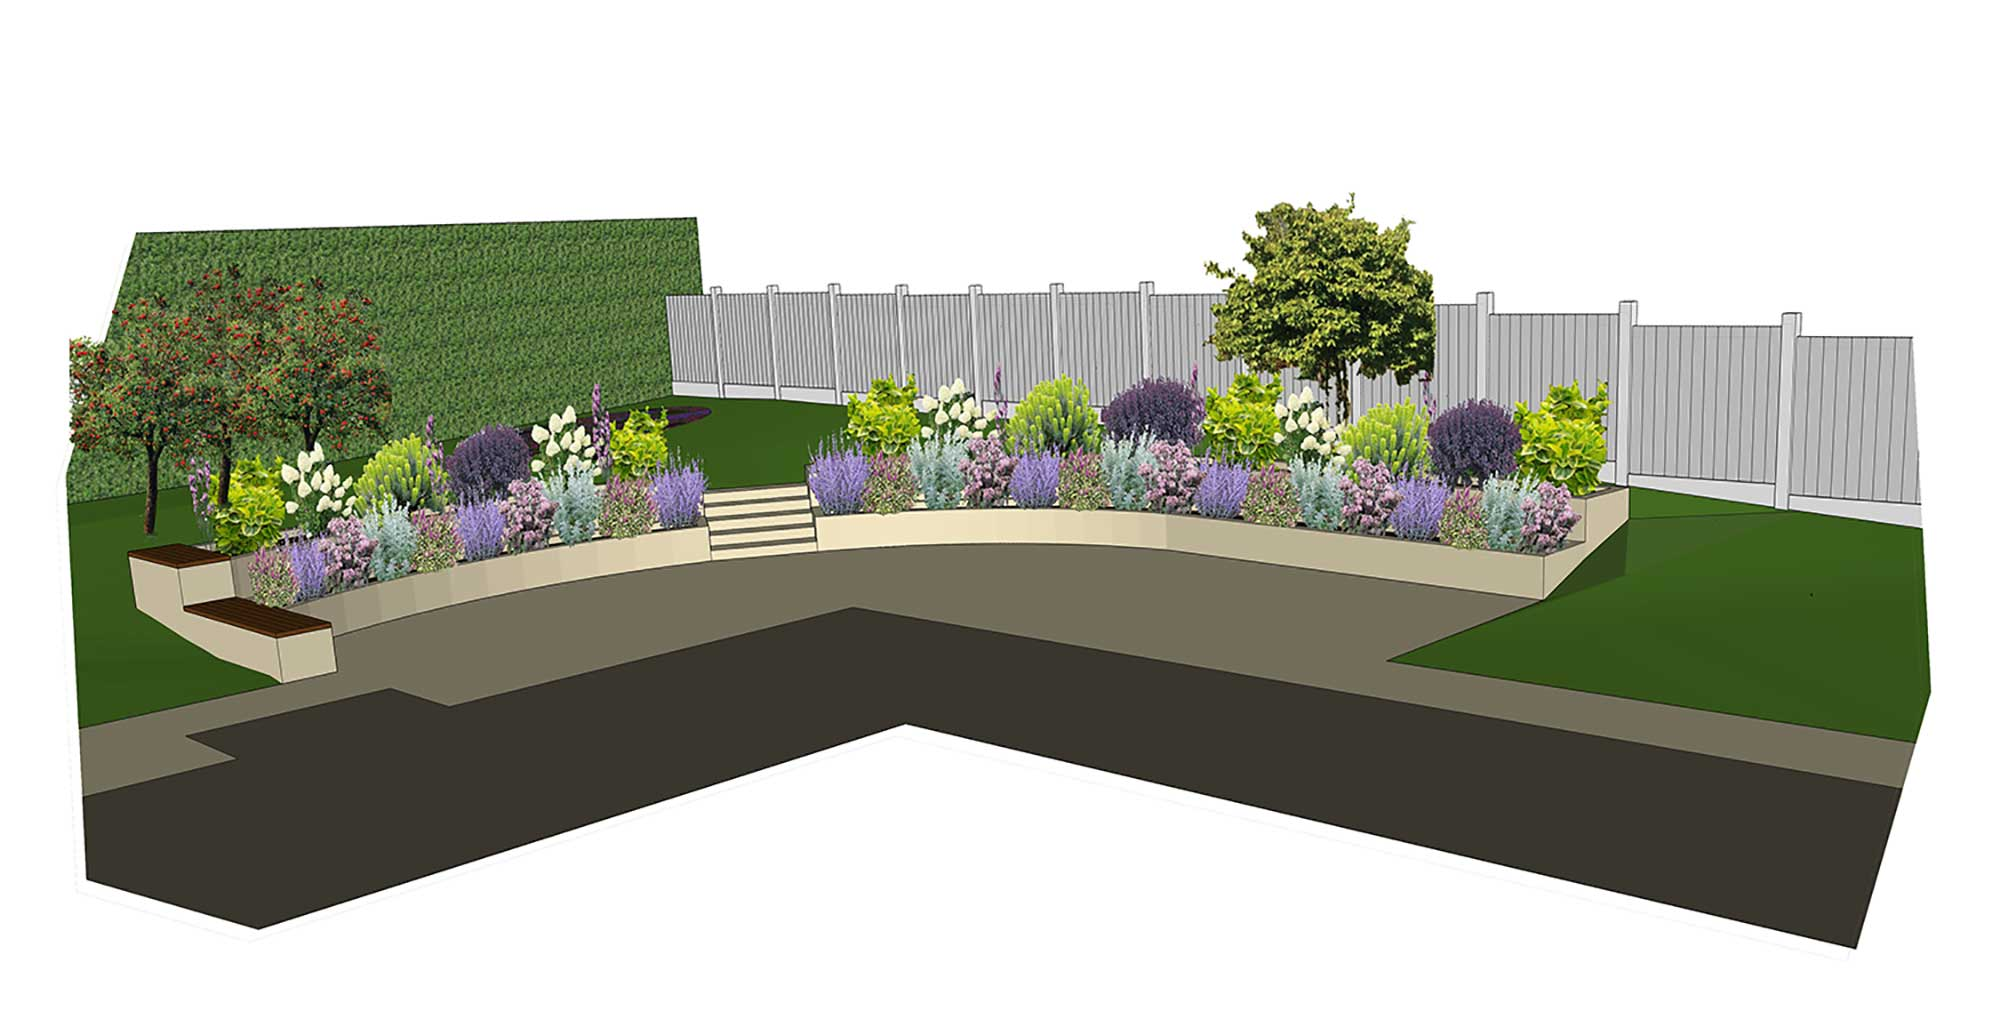 Rear Garden Design Visualisation Garden Design Layout Garden